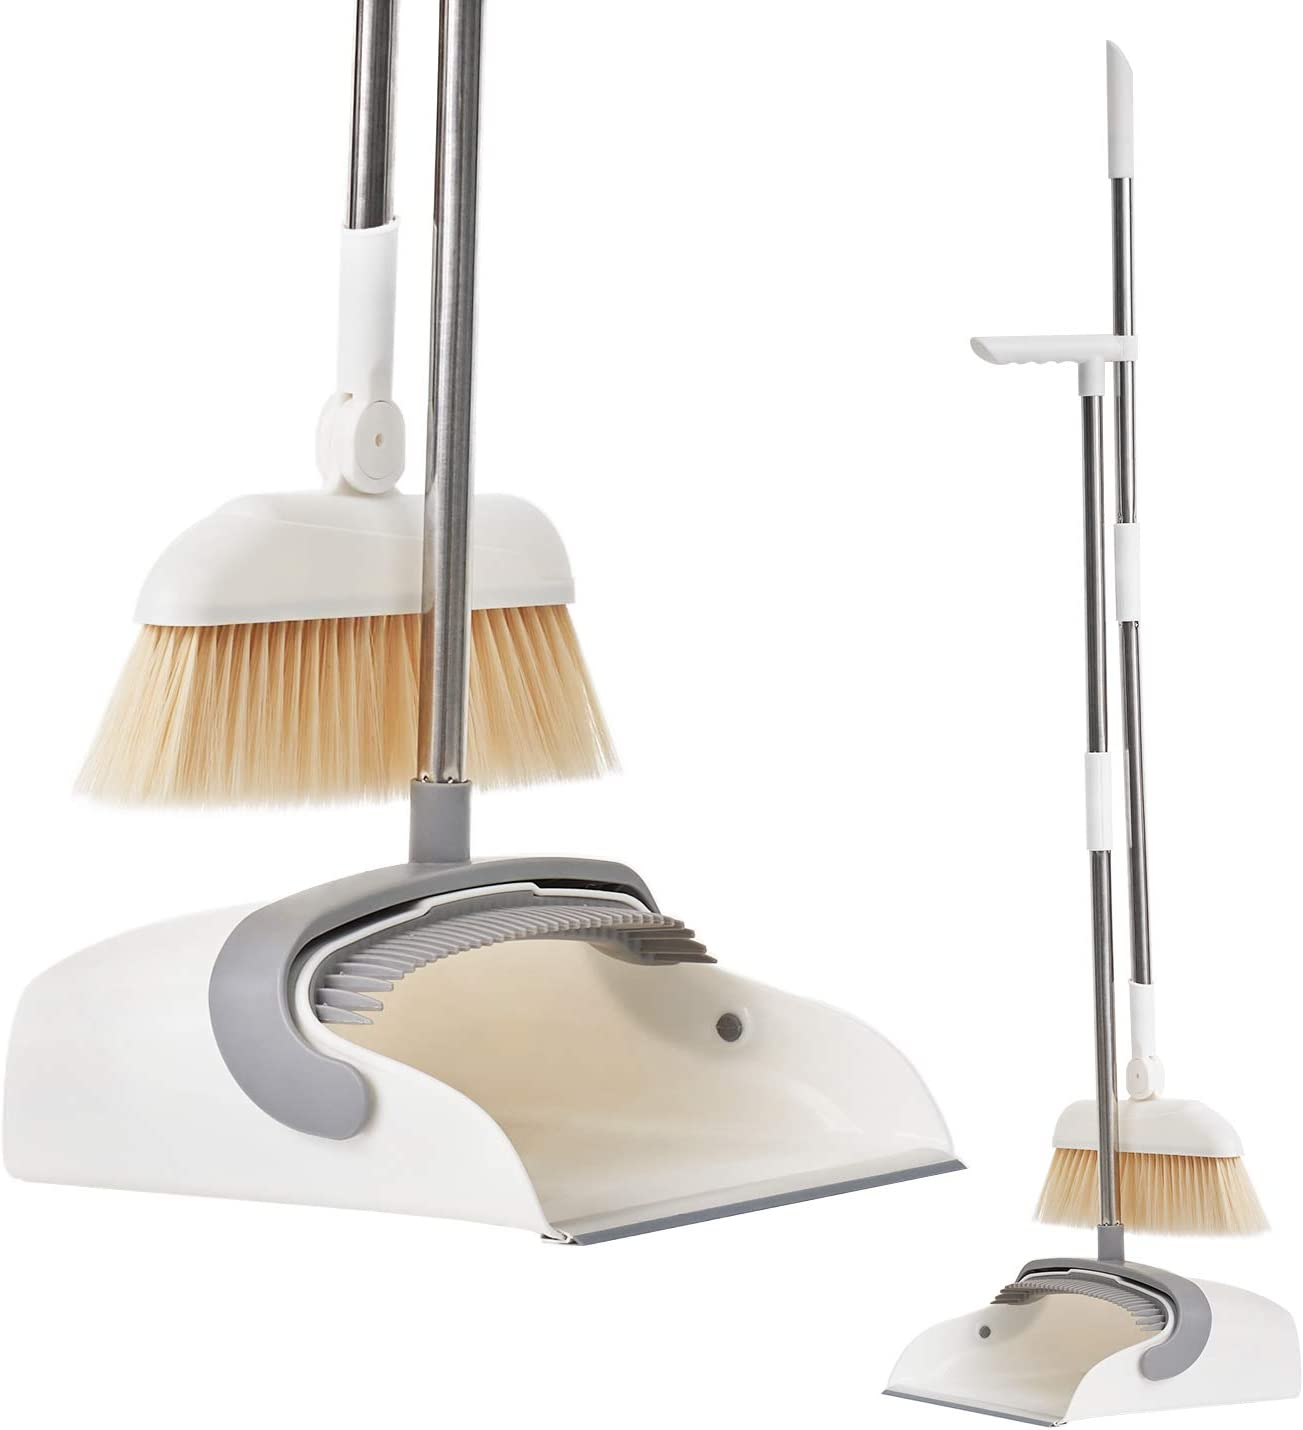 Magnetic Broom and Dustpan Set Standing with Adjustable Long Handle and Rotating Head for Home Kitchen Lobby Office Floor Cleaning: Kitchen & Dining